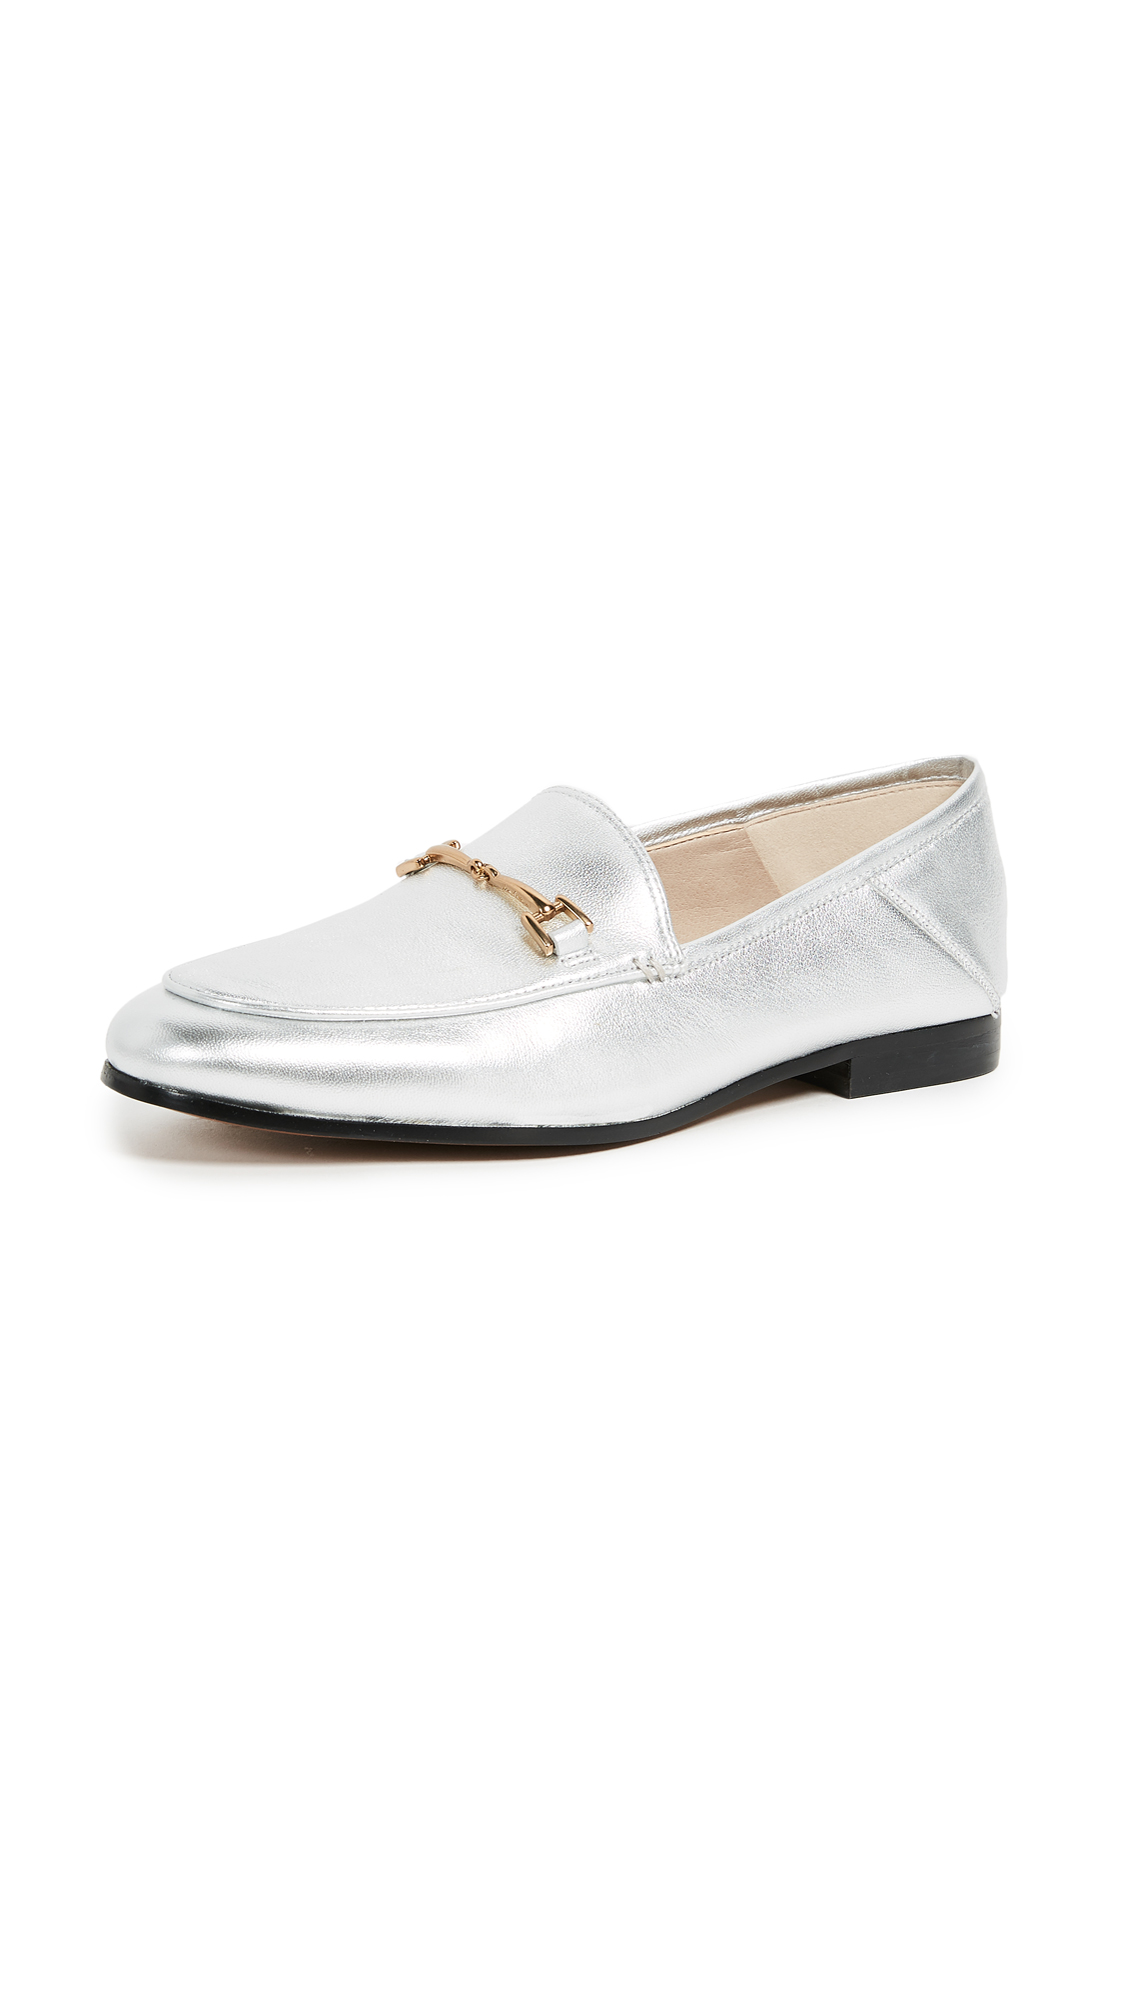 Sam Edelman Loraine Loafers - Silver